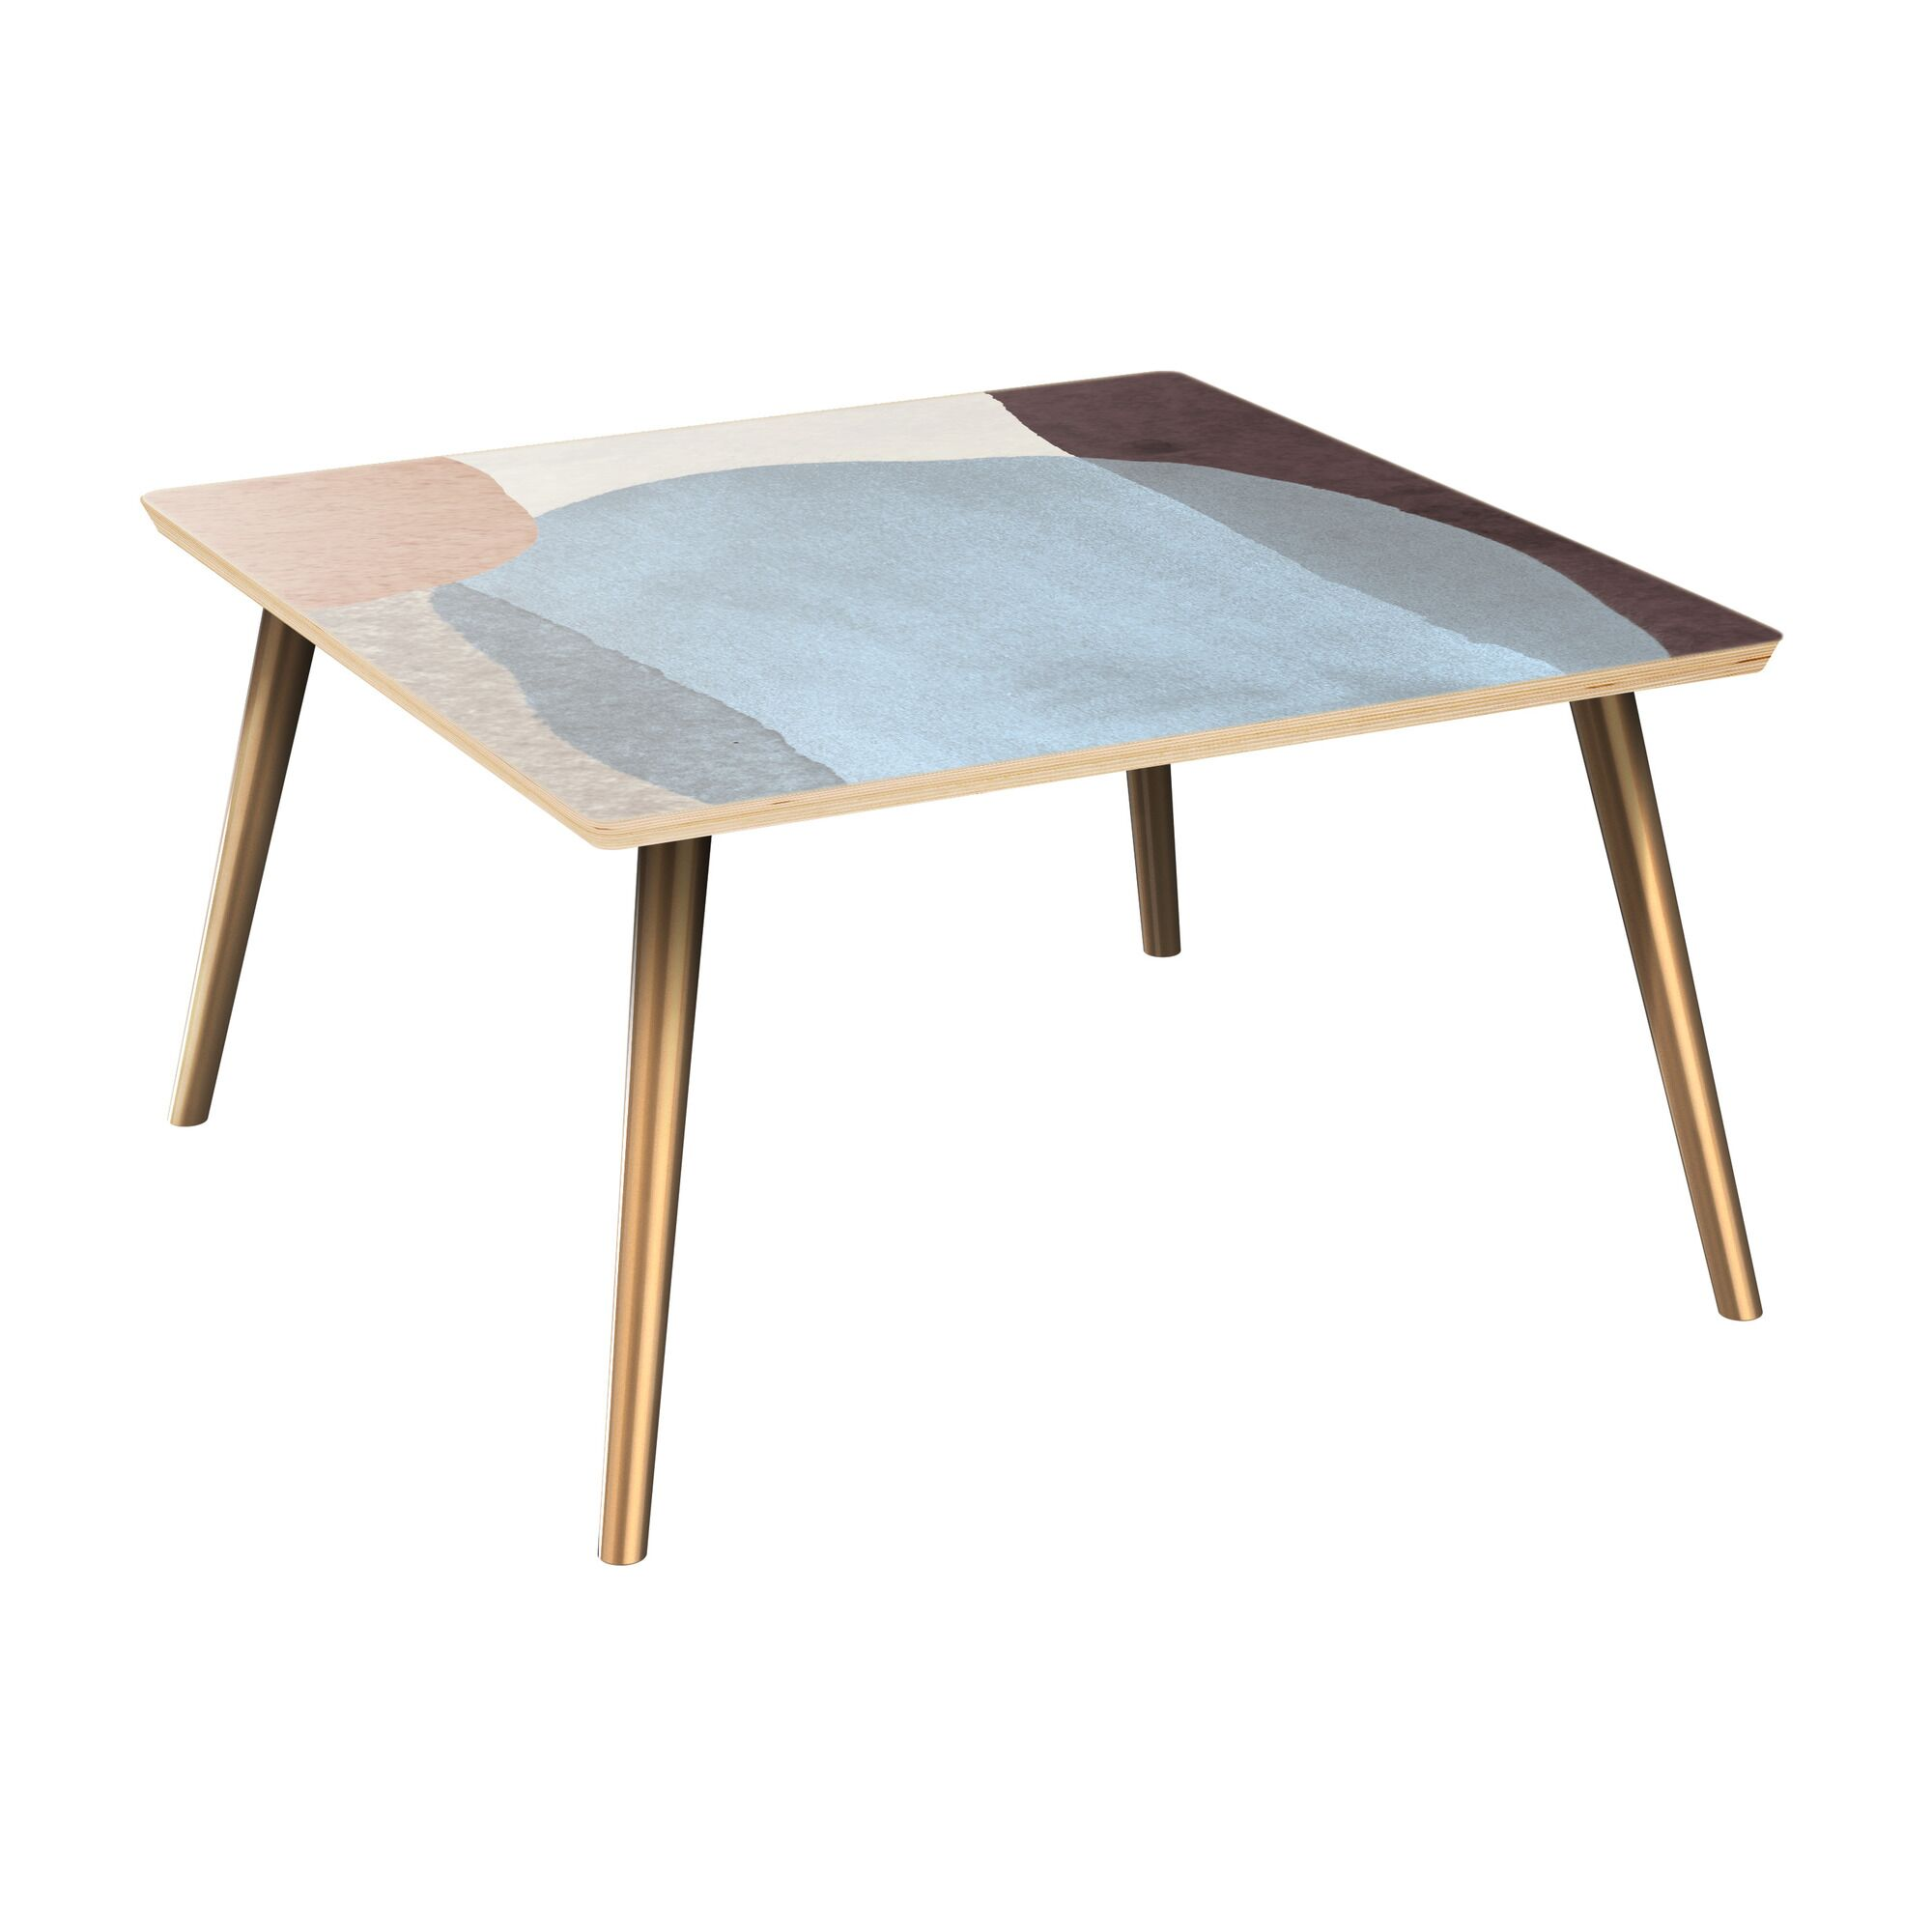 Everette Coffee Table Table Top Color: Natural, Table Base Color: Brass